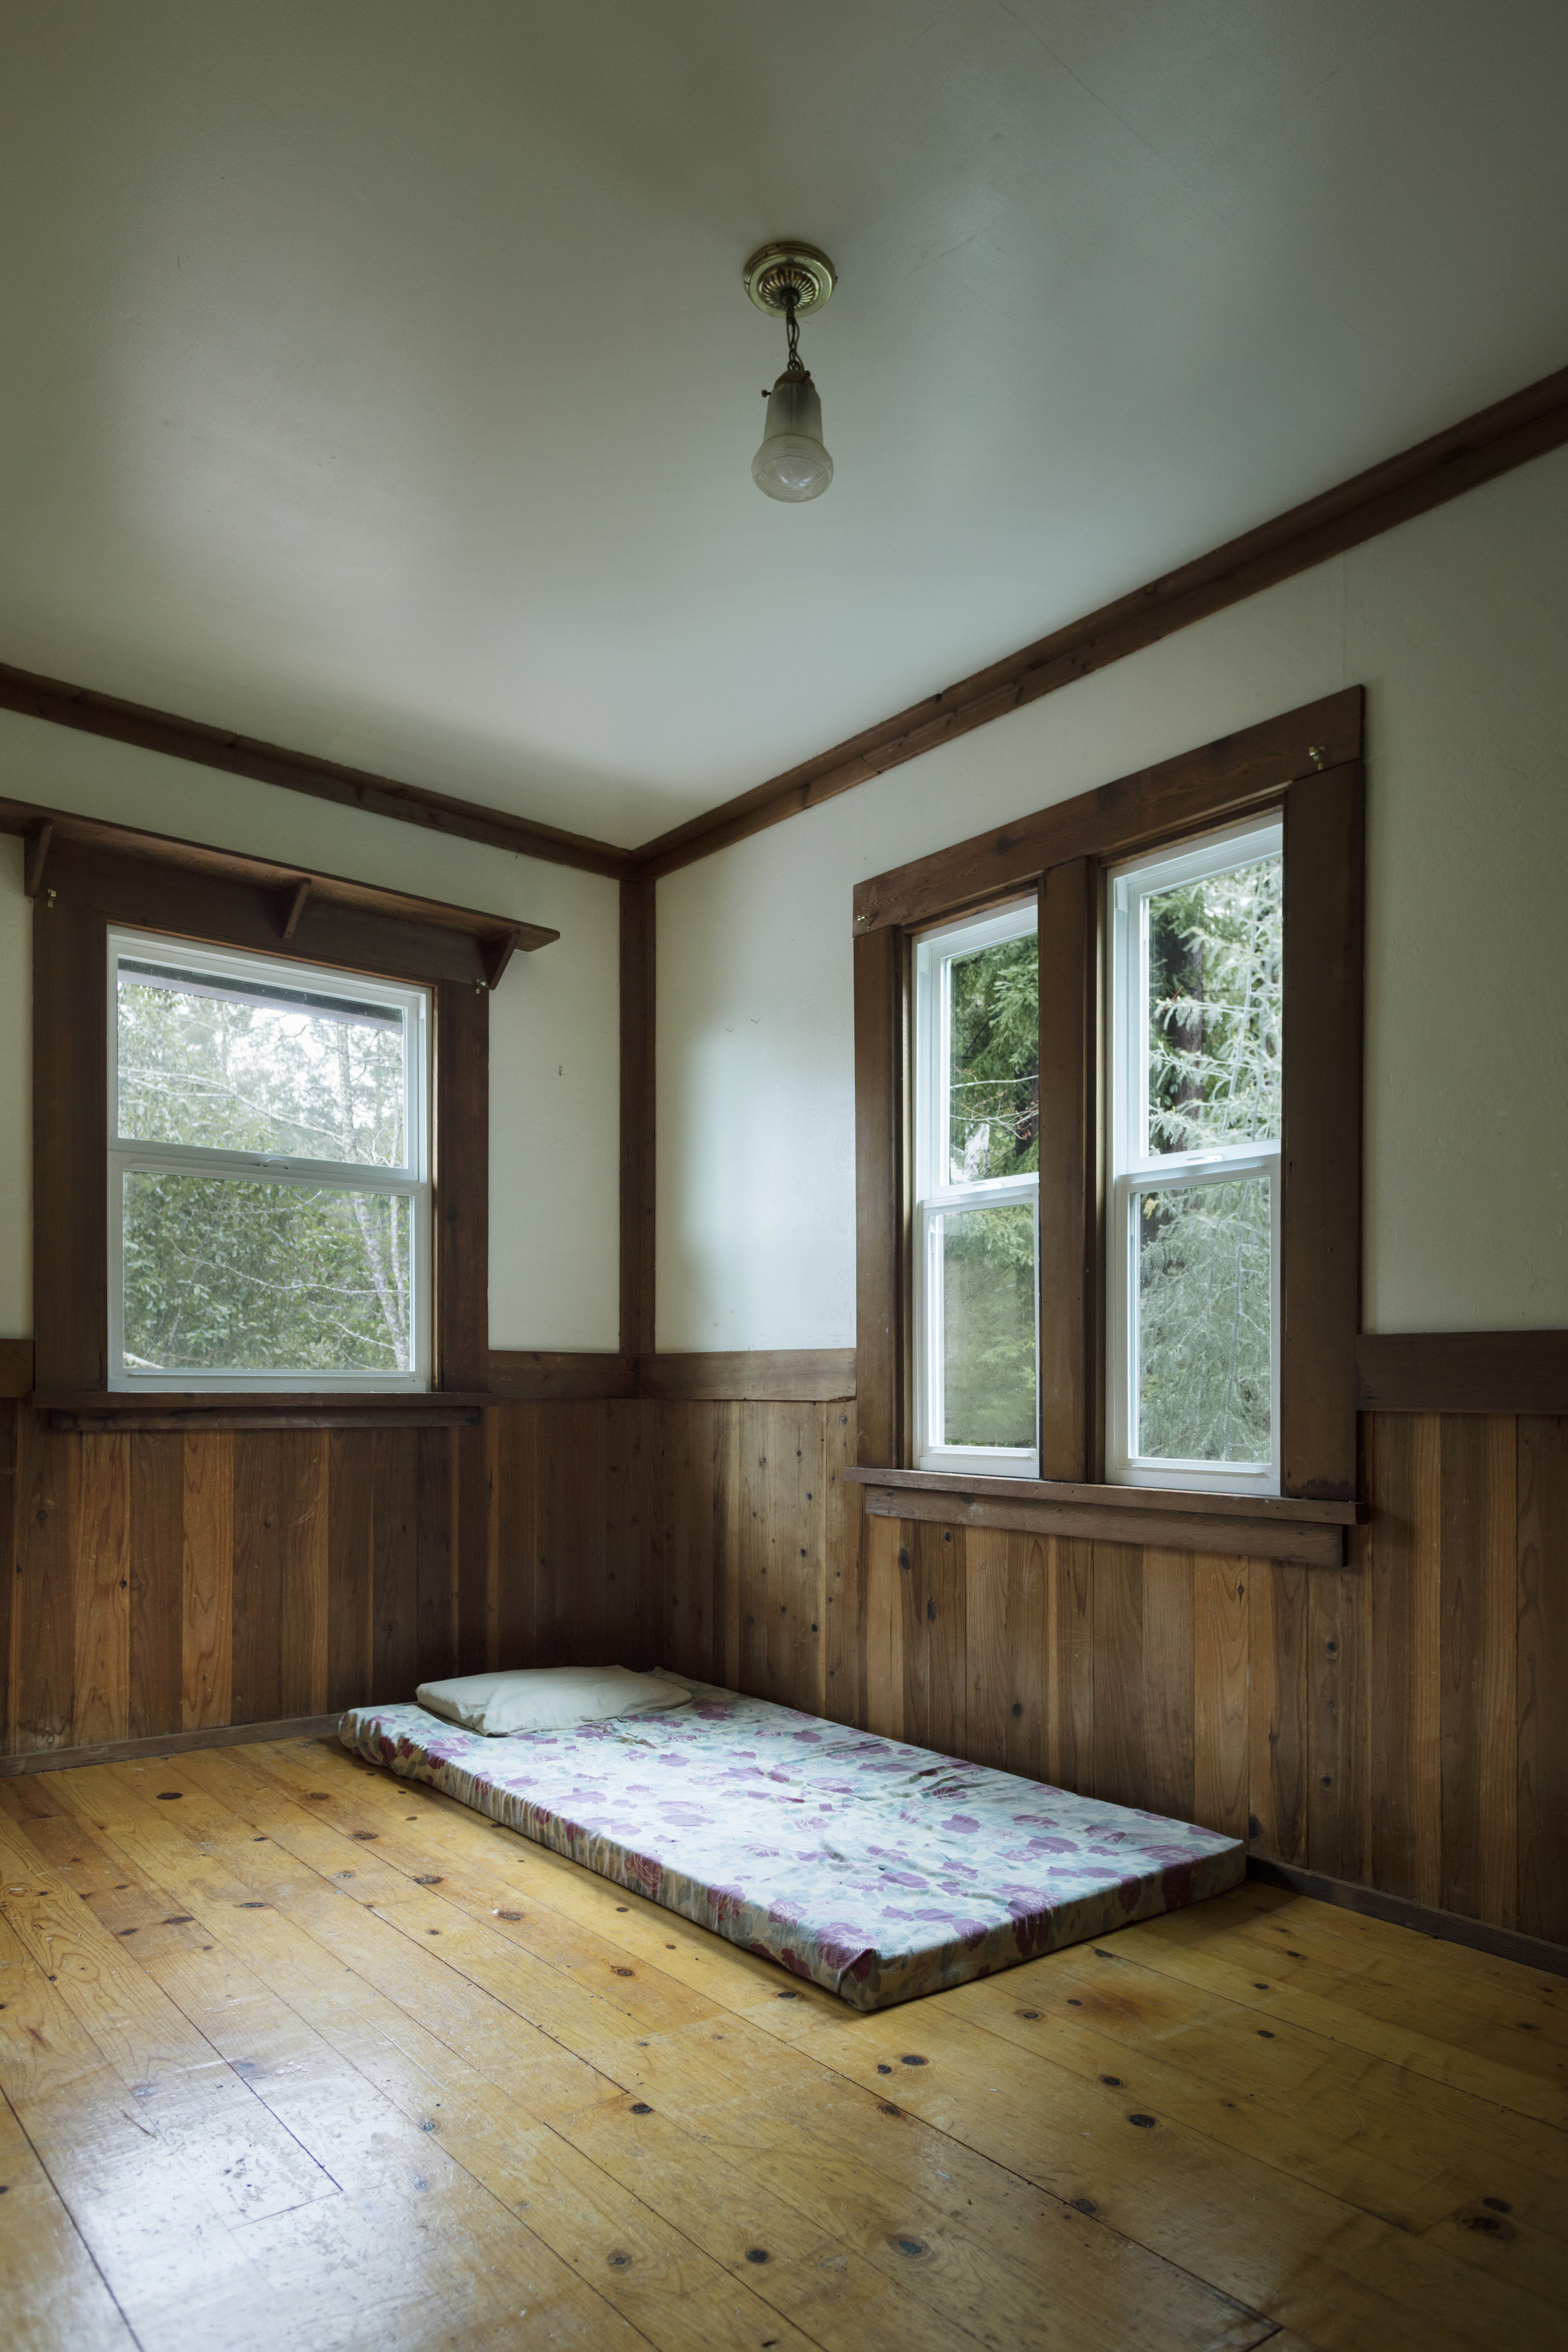 upstairs bedroom in a home for sale in Philo, CA